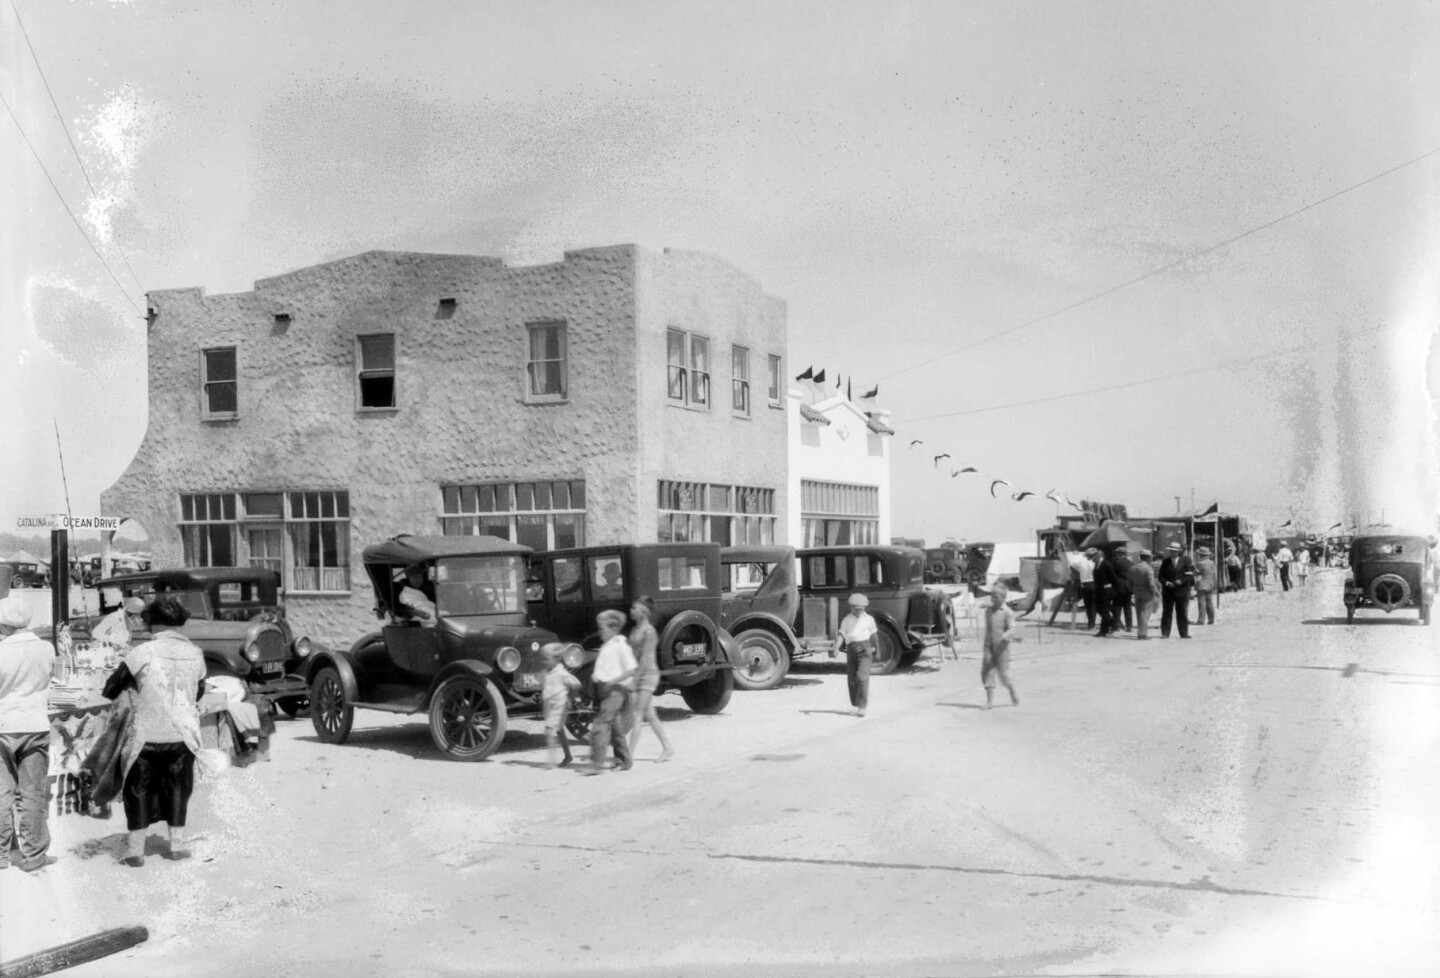 Hollywood-by-the-Sea in 1927. Courtesy of the USC Libraries - Dick Whittington Photography Collection.